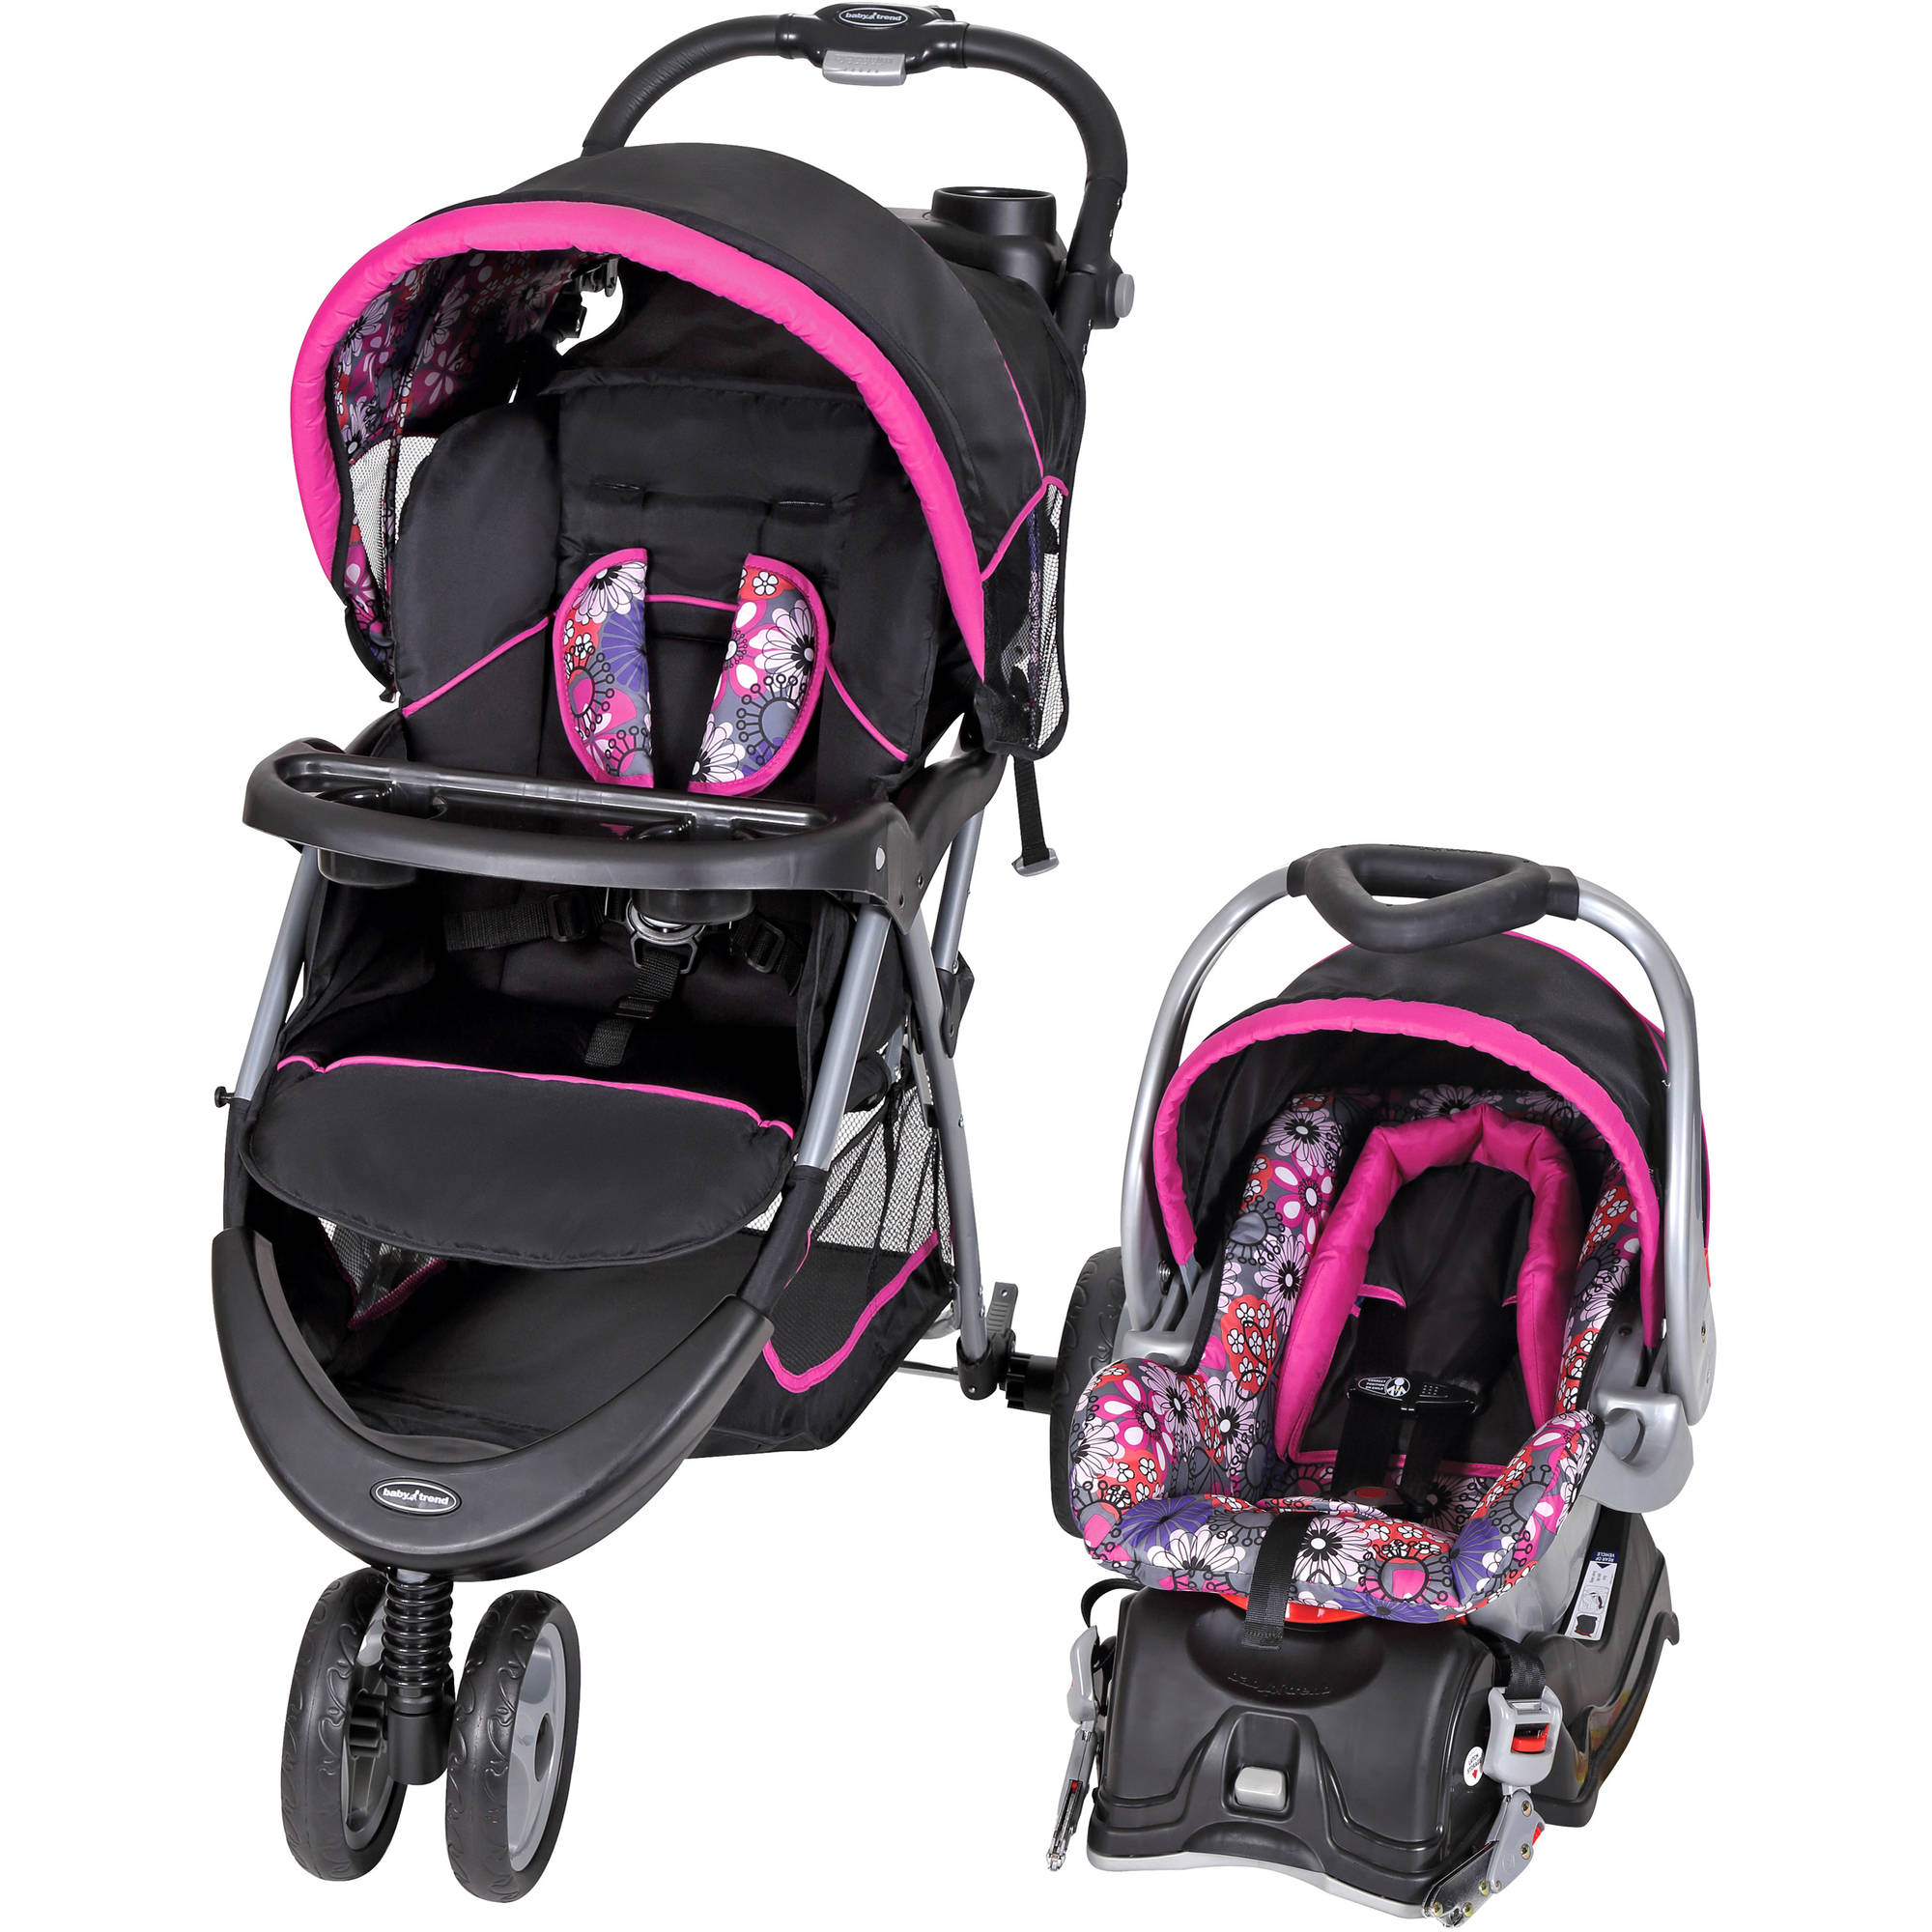 Here is the Brand-new Image Of Walmart Baby Trend Stroller and Carseat